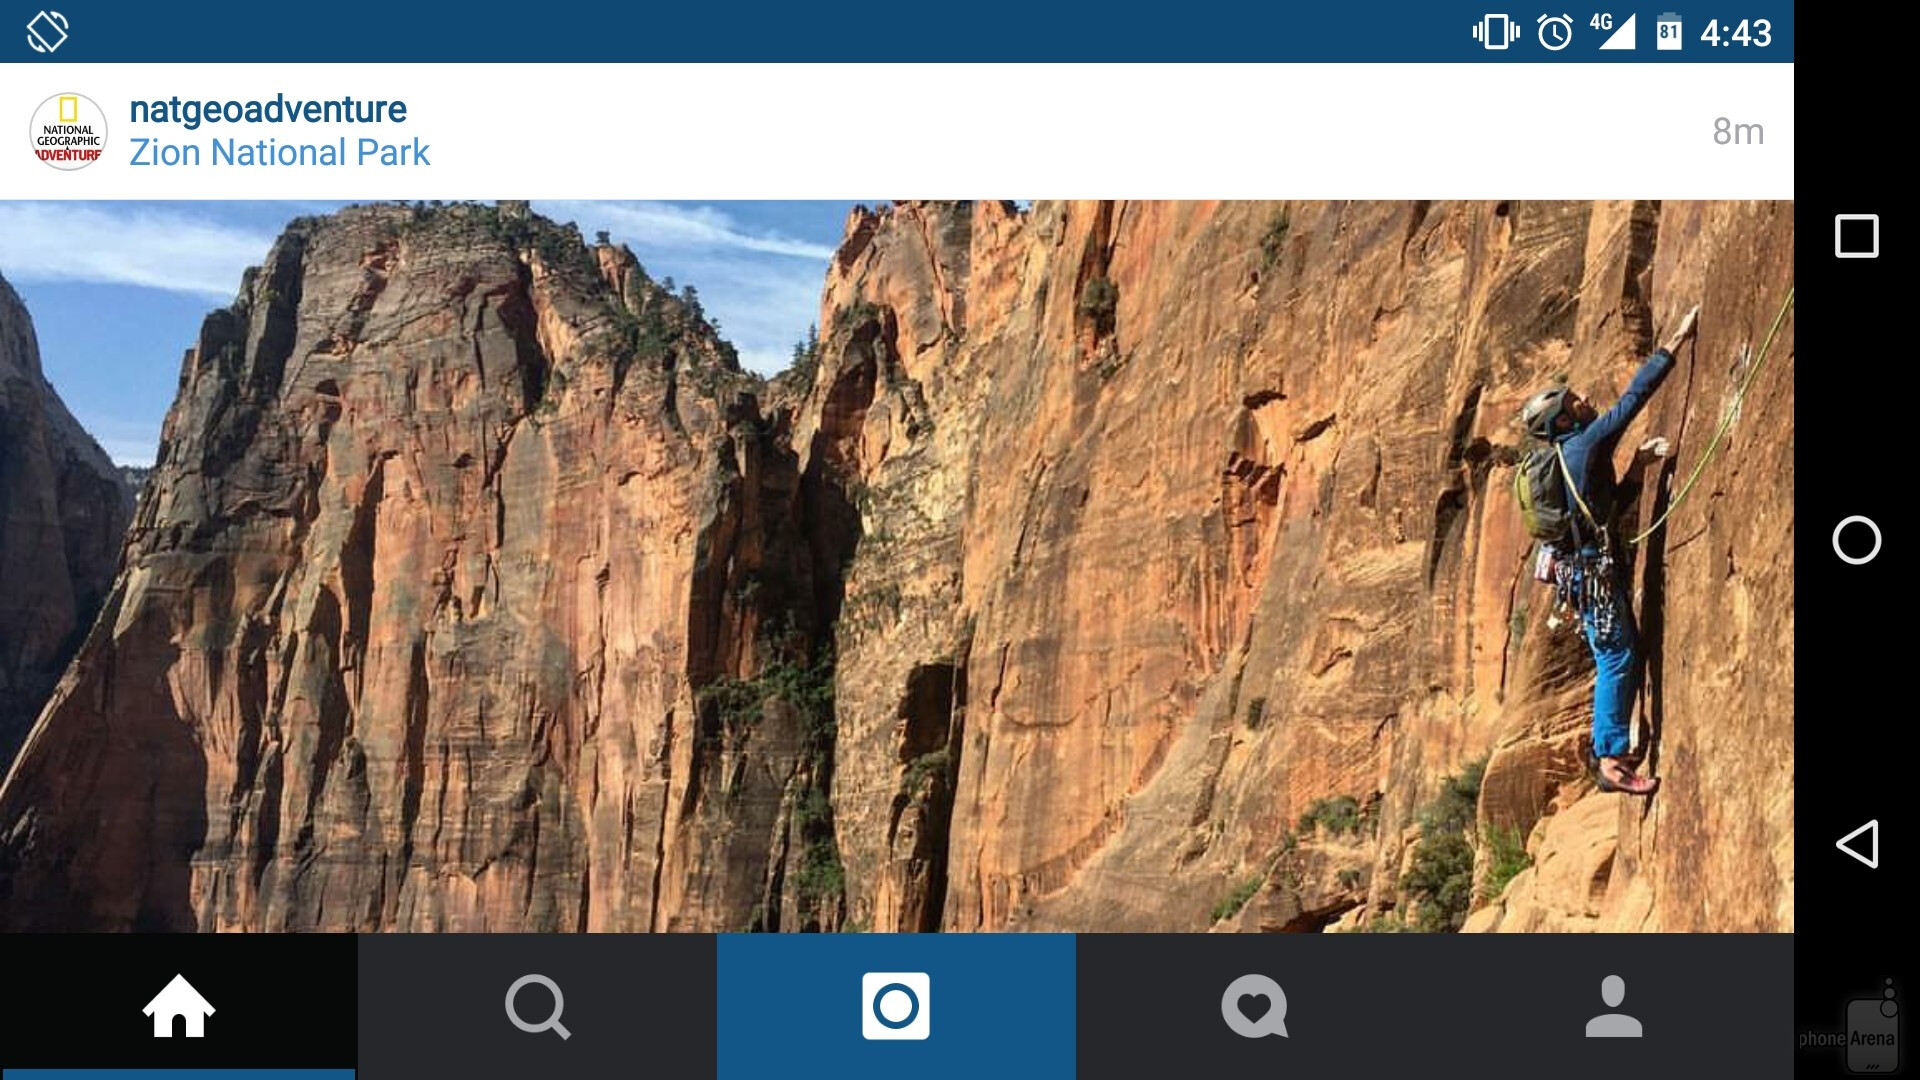 to this when your device is in landscape mode image from how to force landscape or portrait mode in apps like instagram and others android